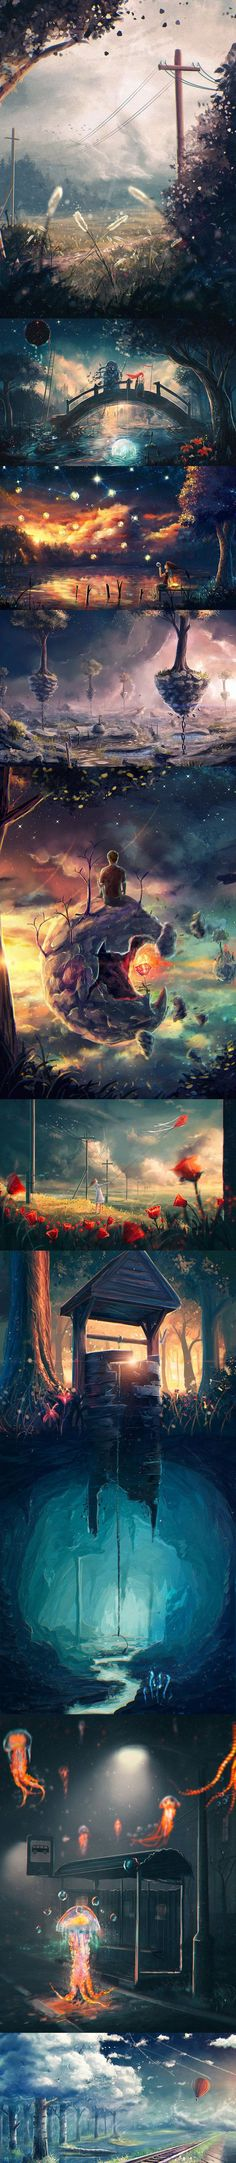 New Digital Art Landscape Dreams Posts Ideas Fantasy Places, Fantasy World, Fantasy Art, Fantasy Landscape, Landscape Art, Anime Body, Anime Pokemon, Anime Scenery, Noragami